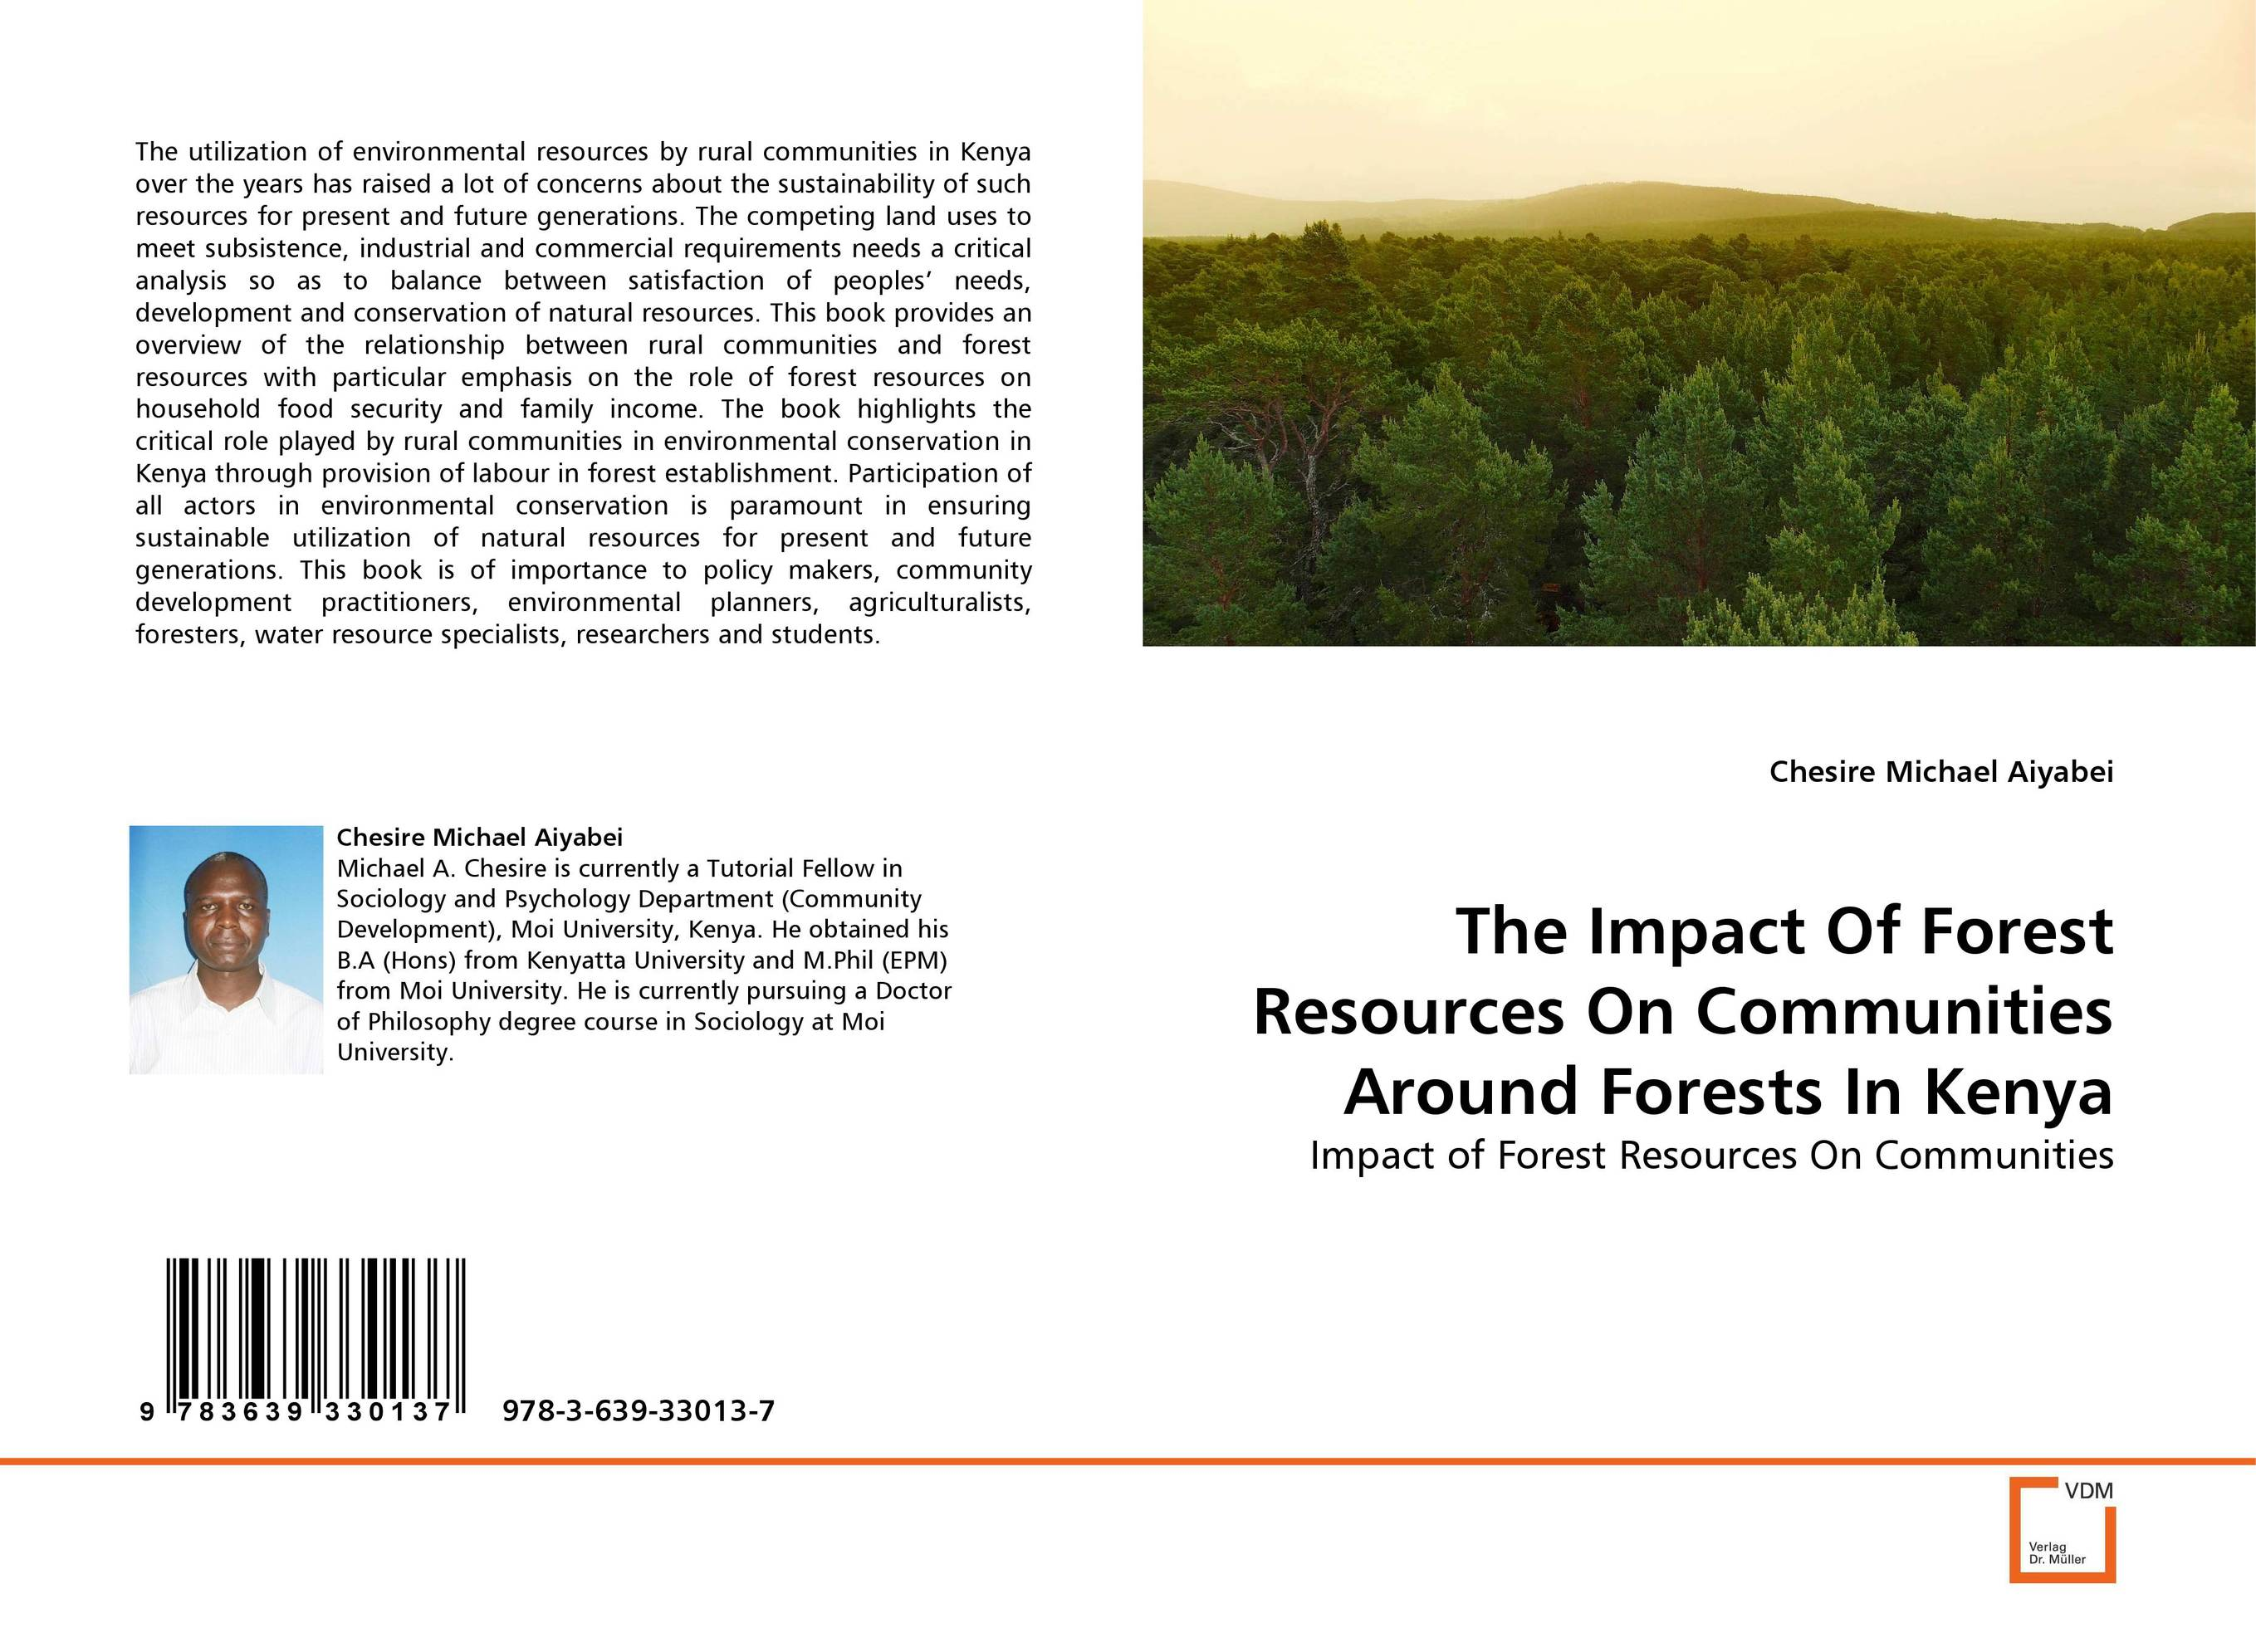 The Impact Of Forest Resources On Communities Around Forests In Kenya the role of heritage conservation districts